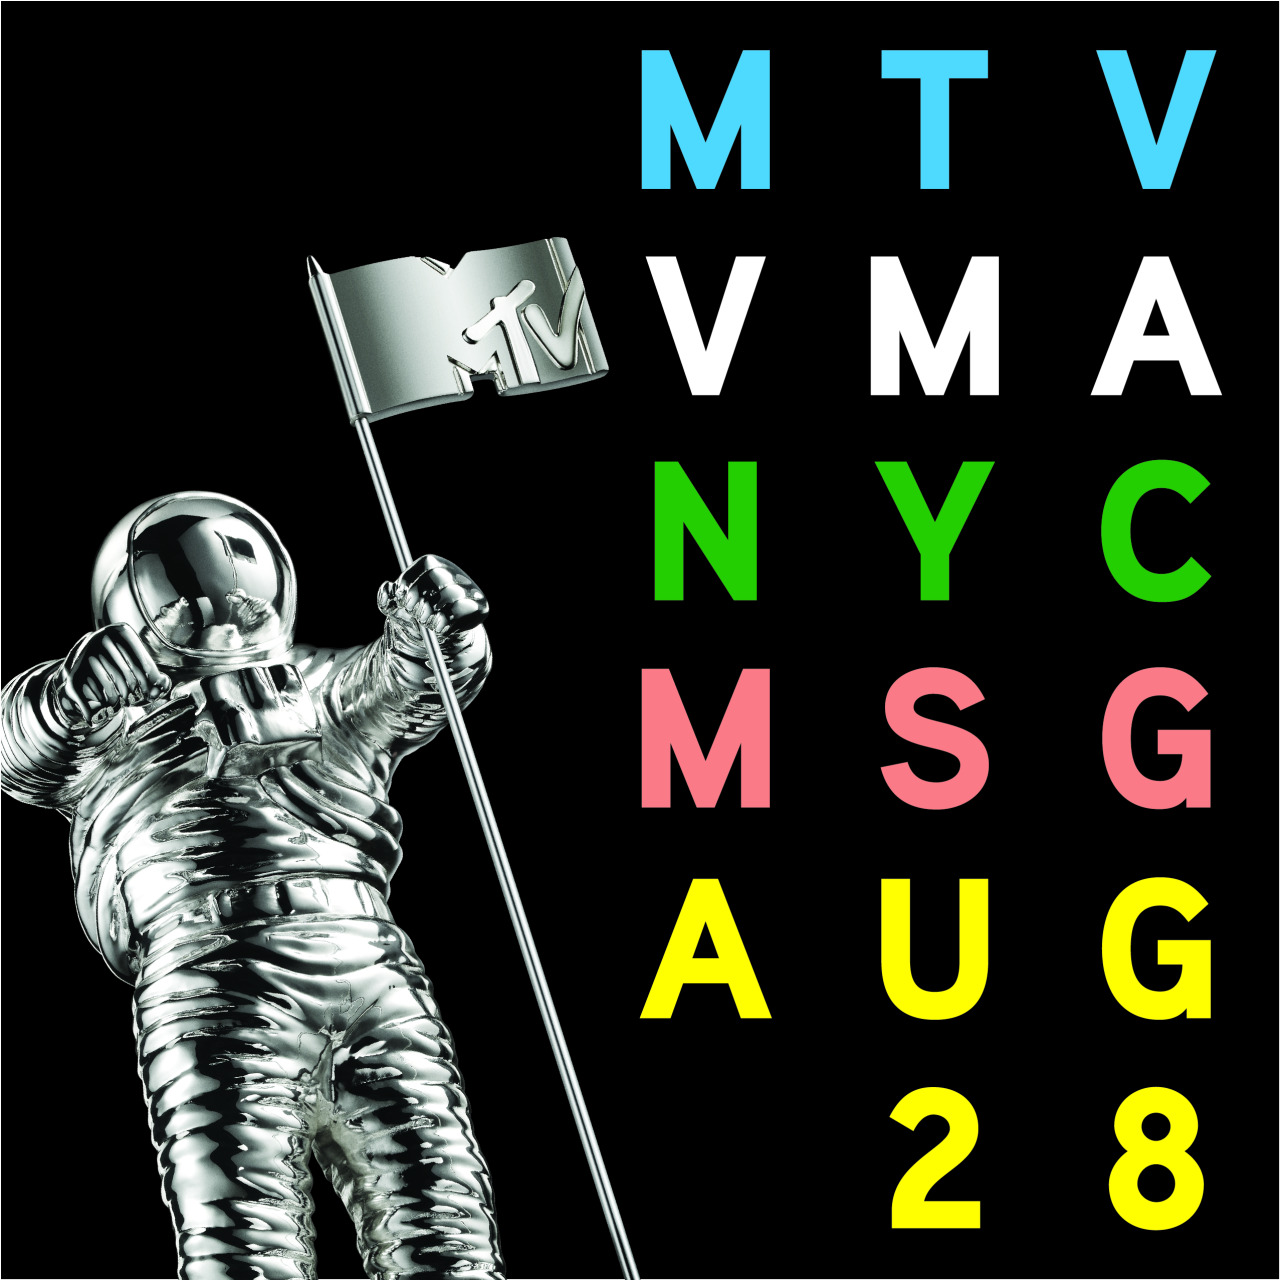 mtv-vma-nyc-msg-2016-1